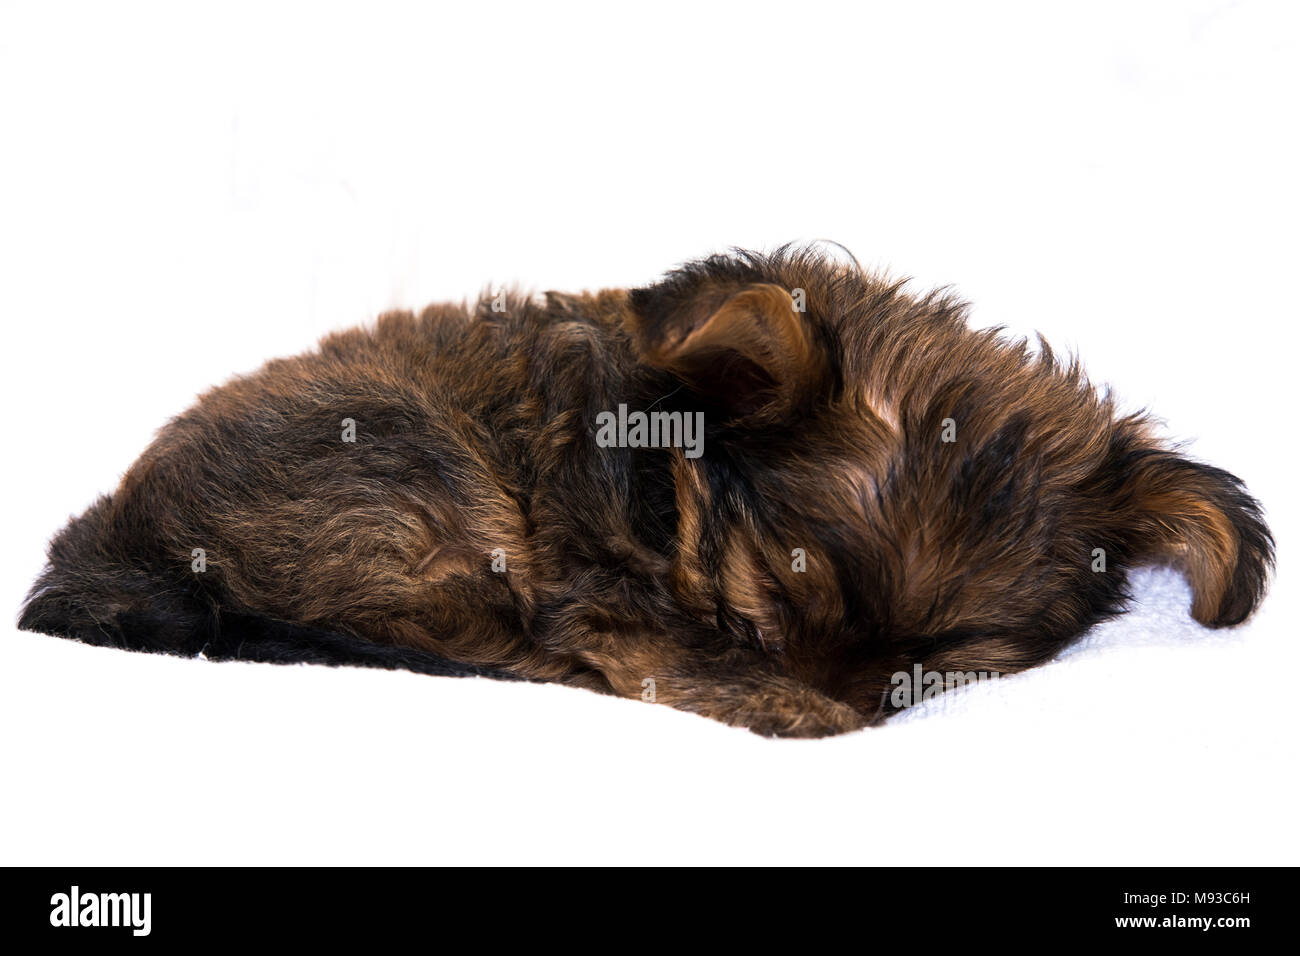 The Yorkshire Terrier is a small dog breed of terrier type, developed during the 19th century in Yorkshire, England, to catch rats in clothing mills. - Stock Image